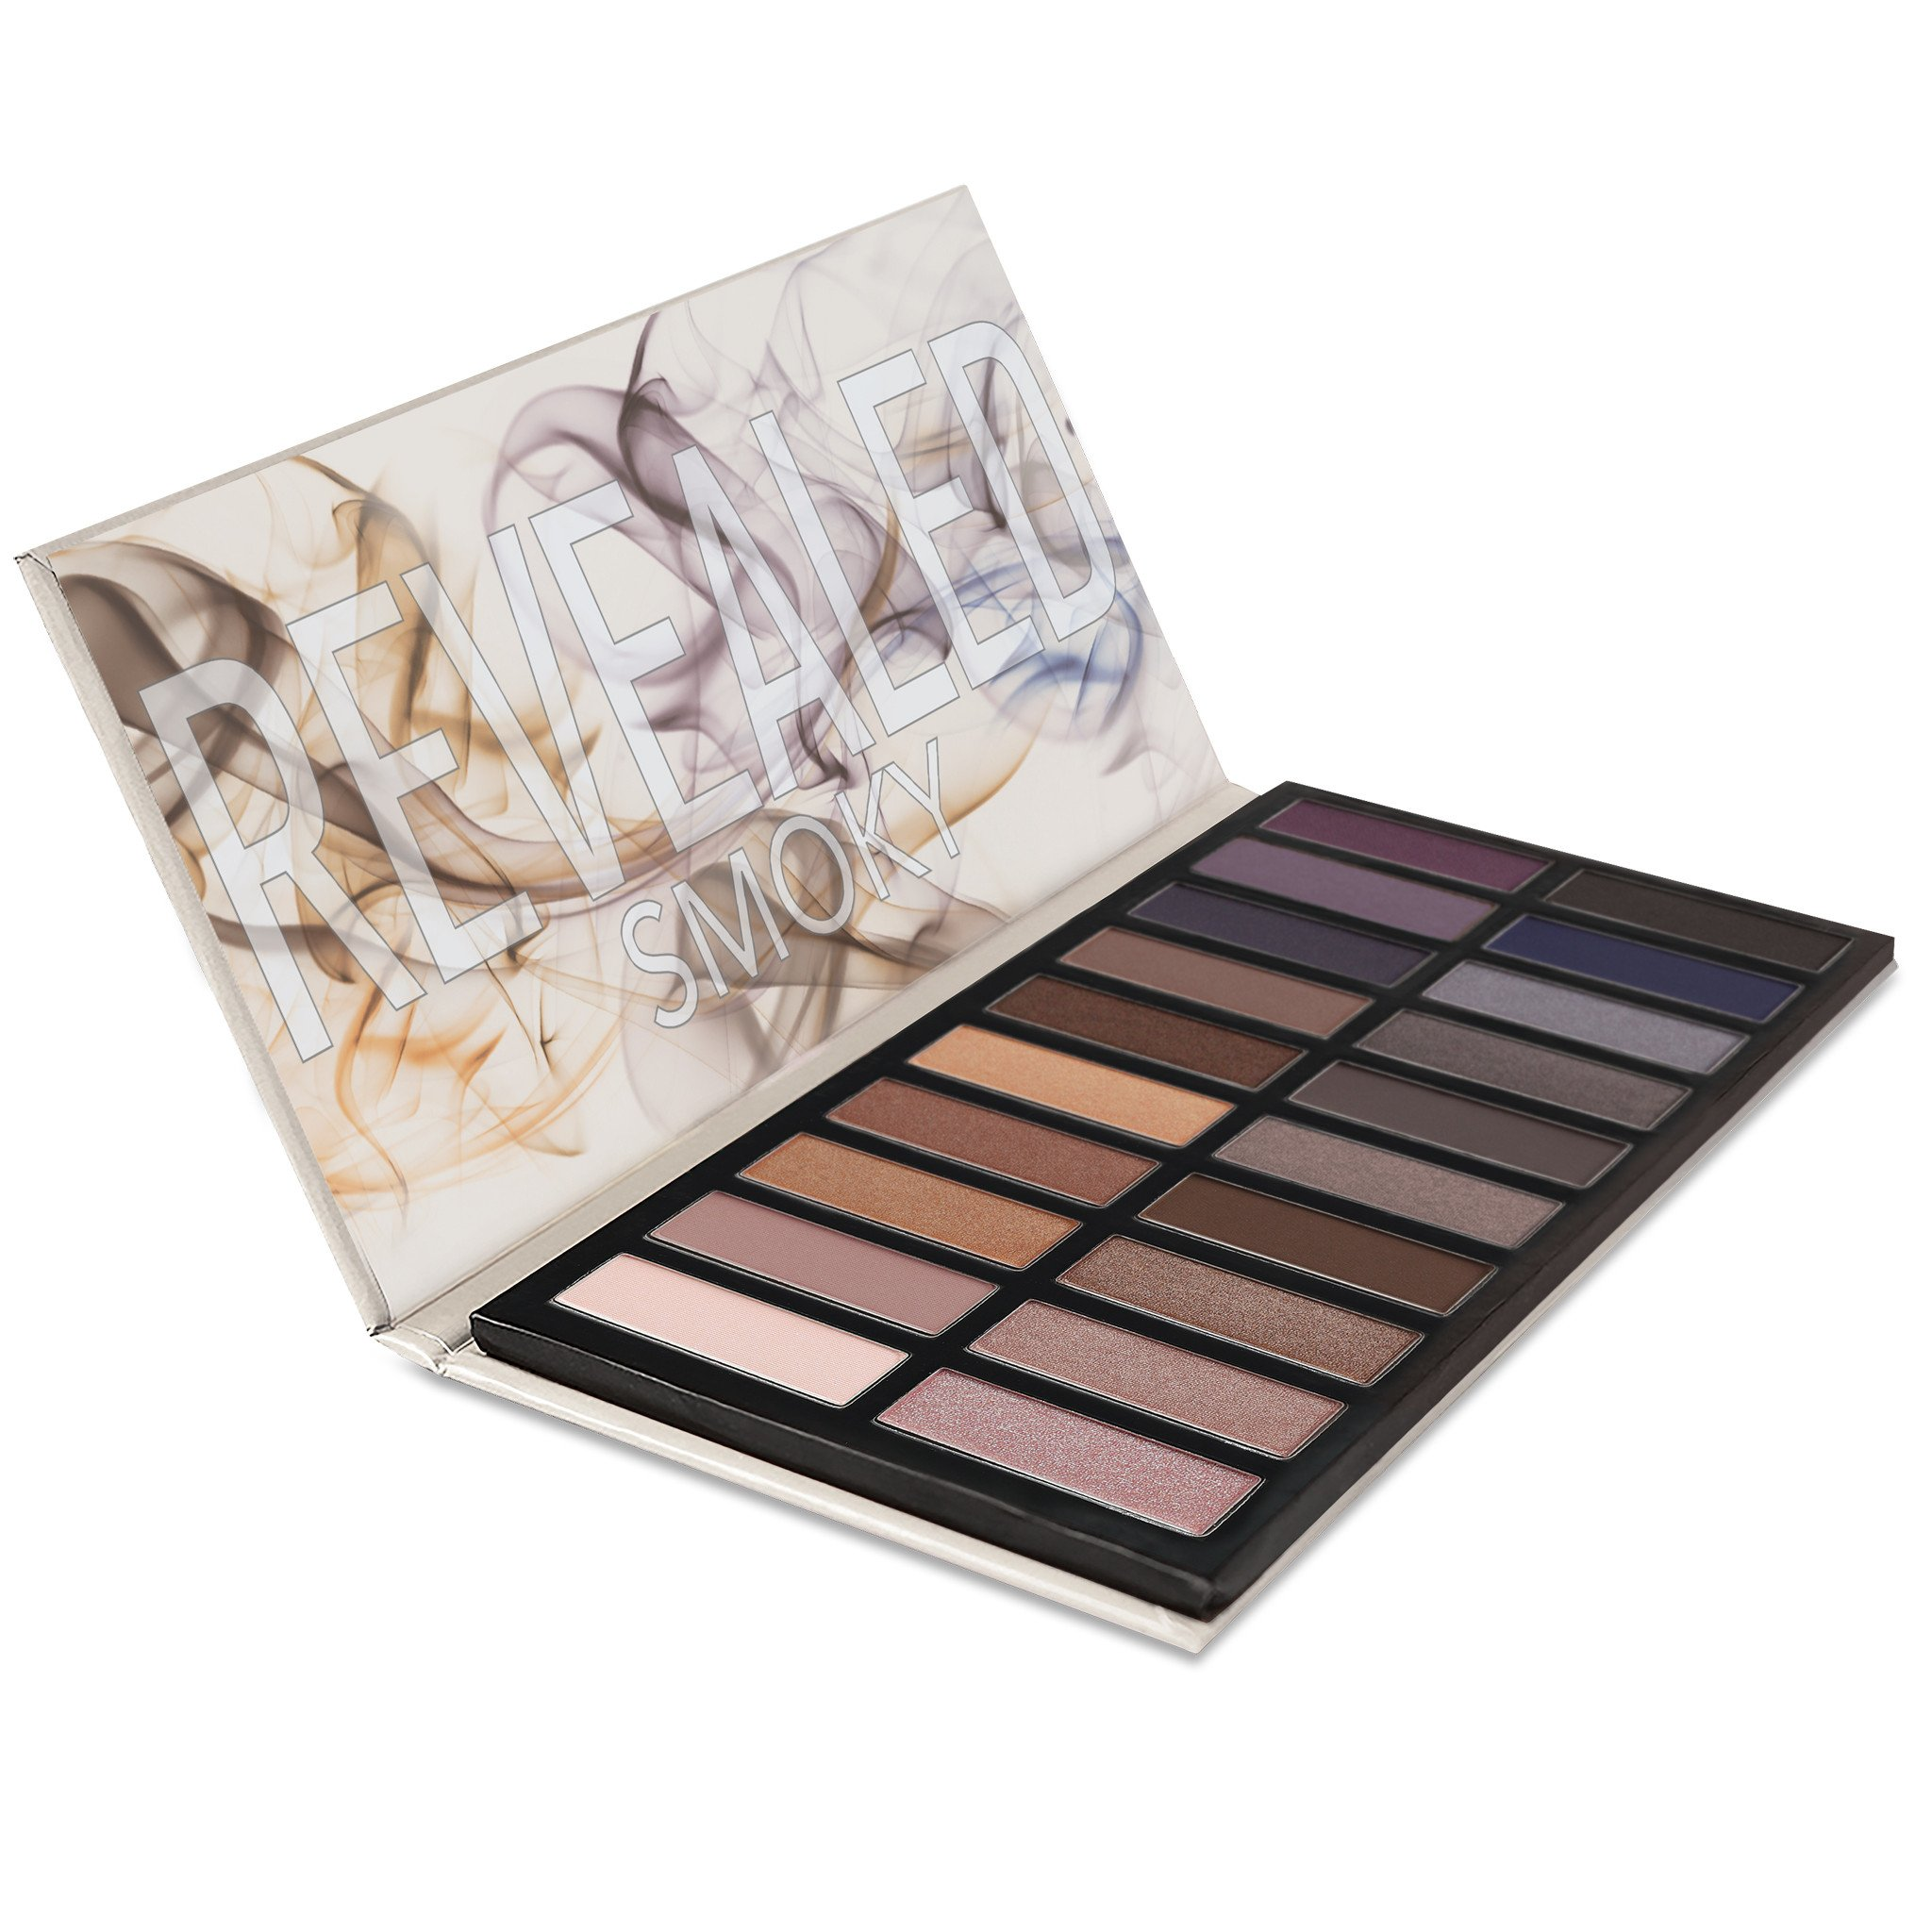 Revealed Smoky Eyeshadow Palette Image